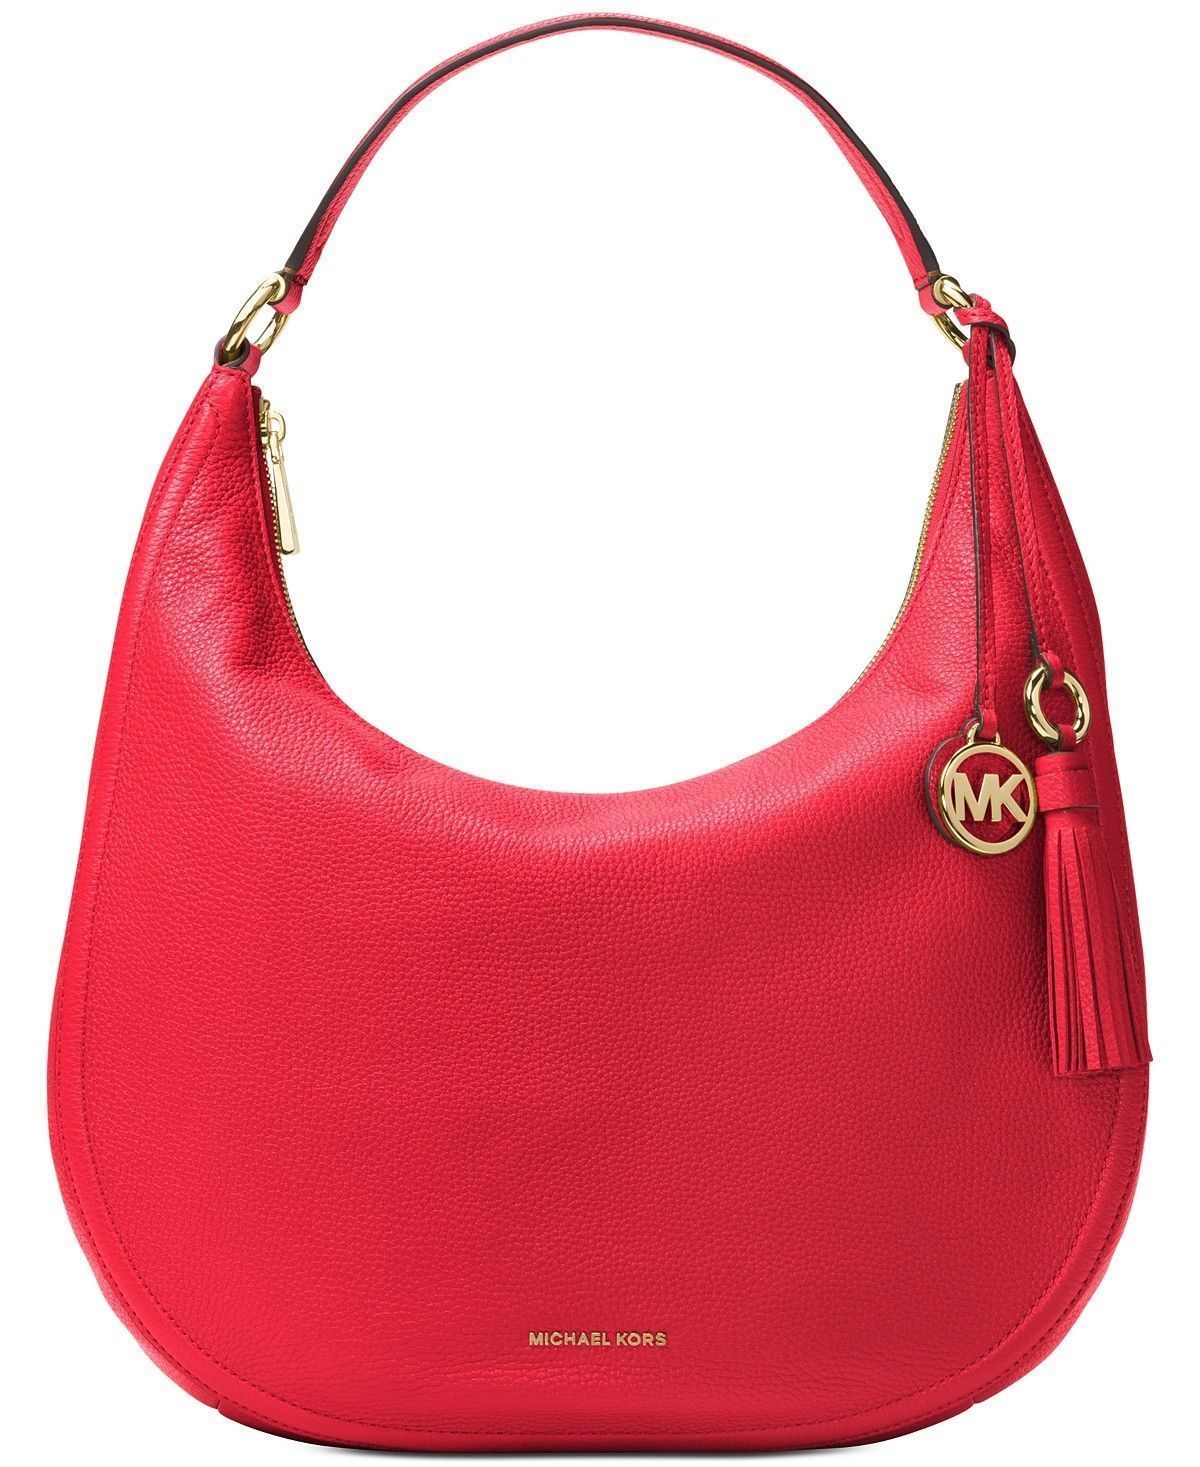 a1477f01866f Michael Kors Large Lydia Leather Hobo Tote & Tassel-BRIGHT RED (FREE  SHIPPING)